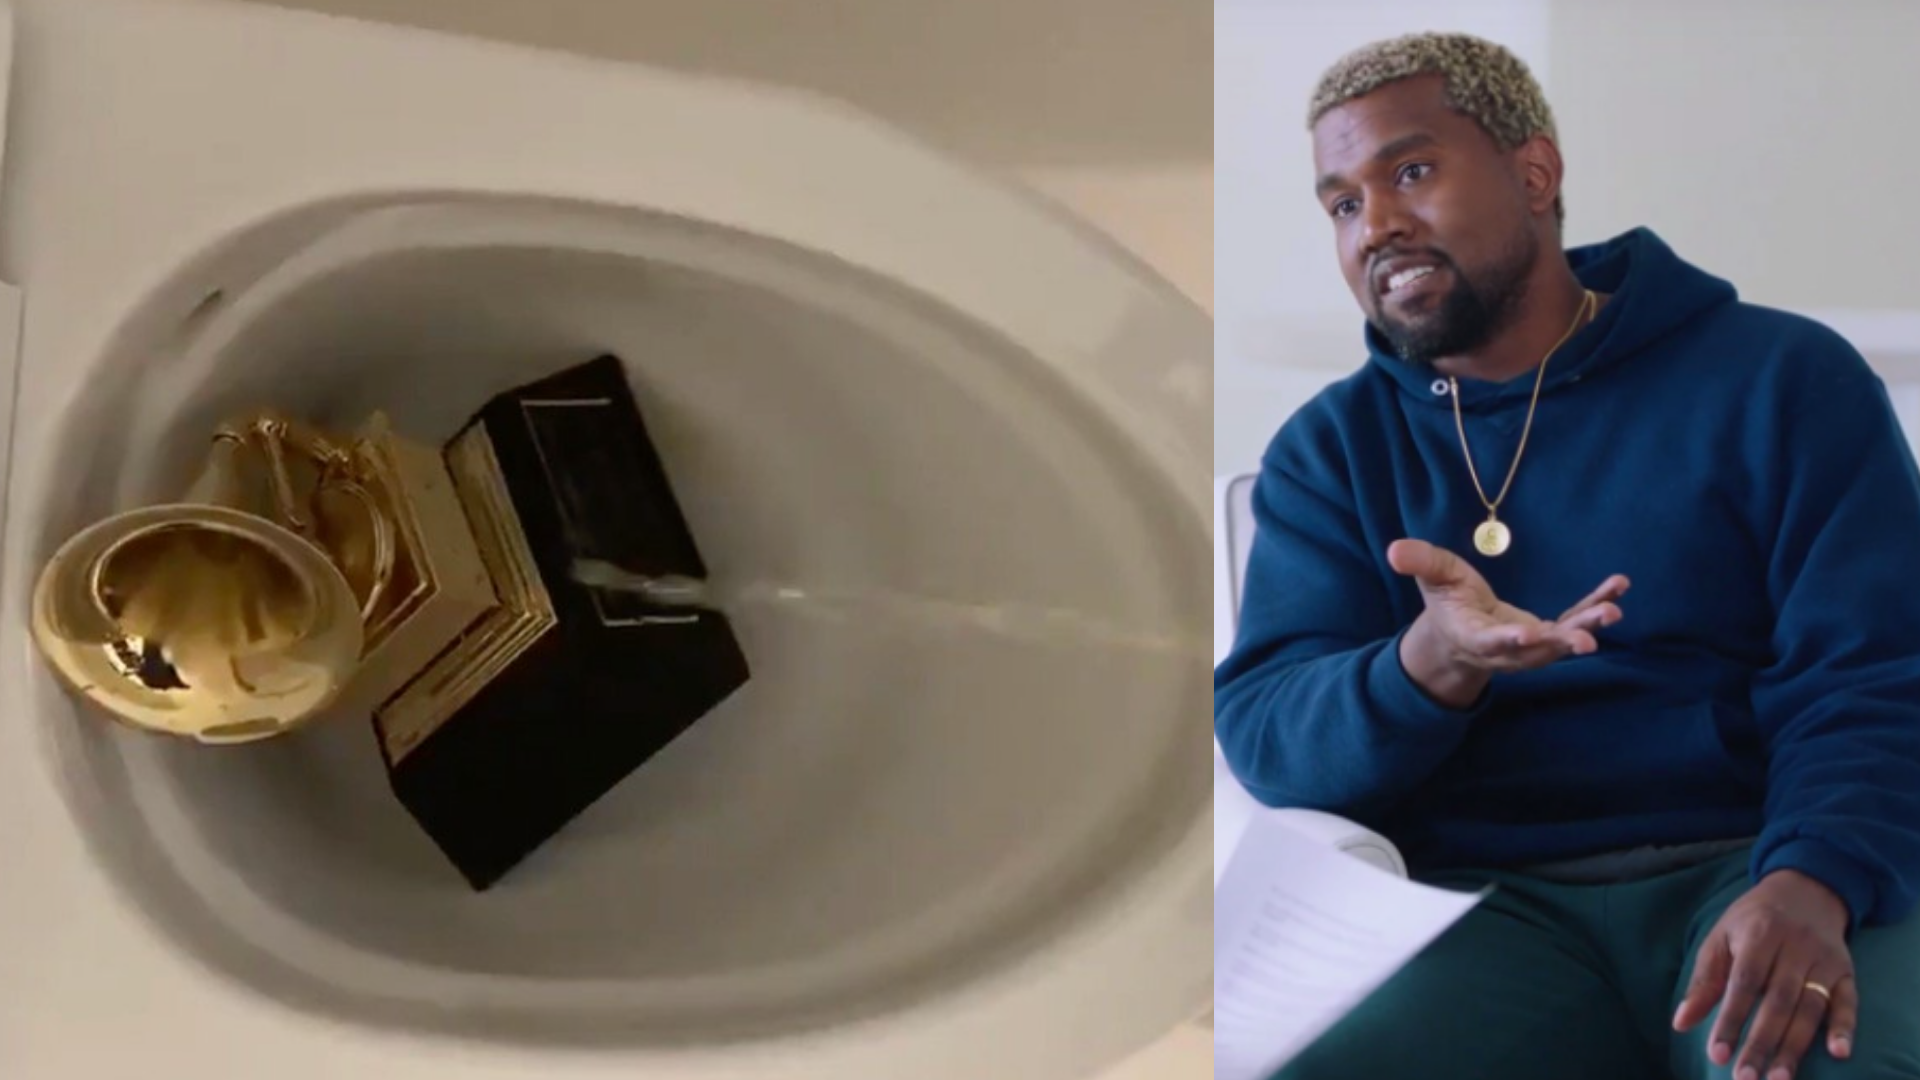 Social Media Reacts to Kanye West Peeing on Grammy Award